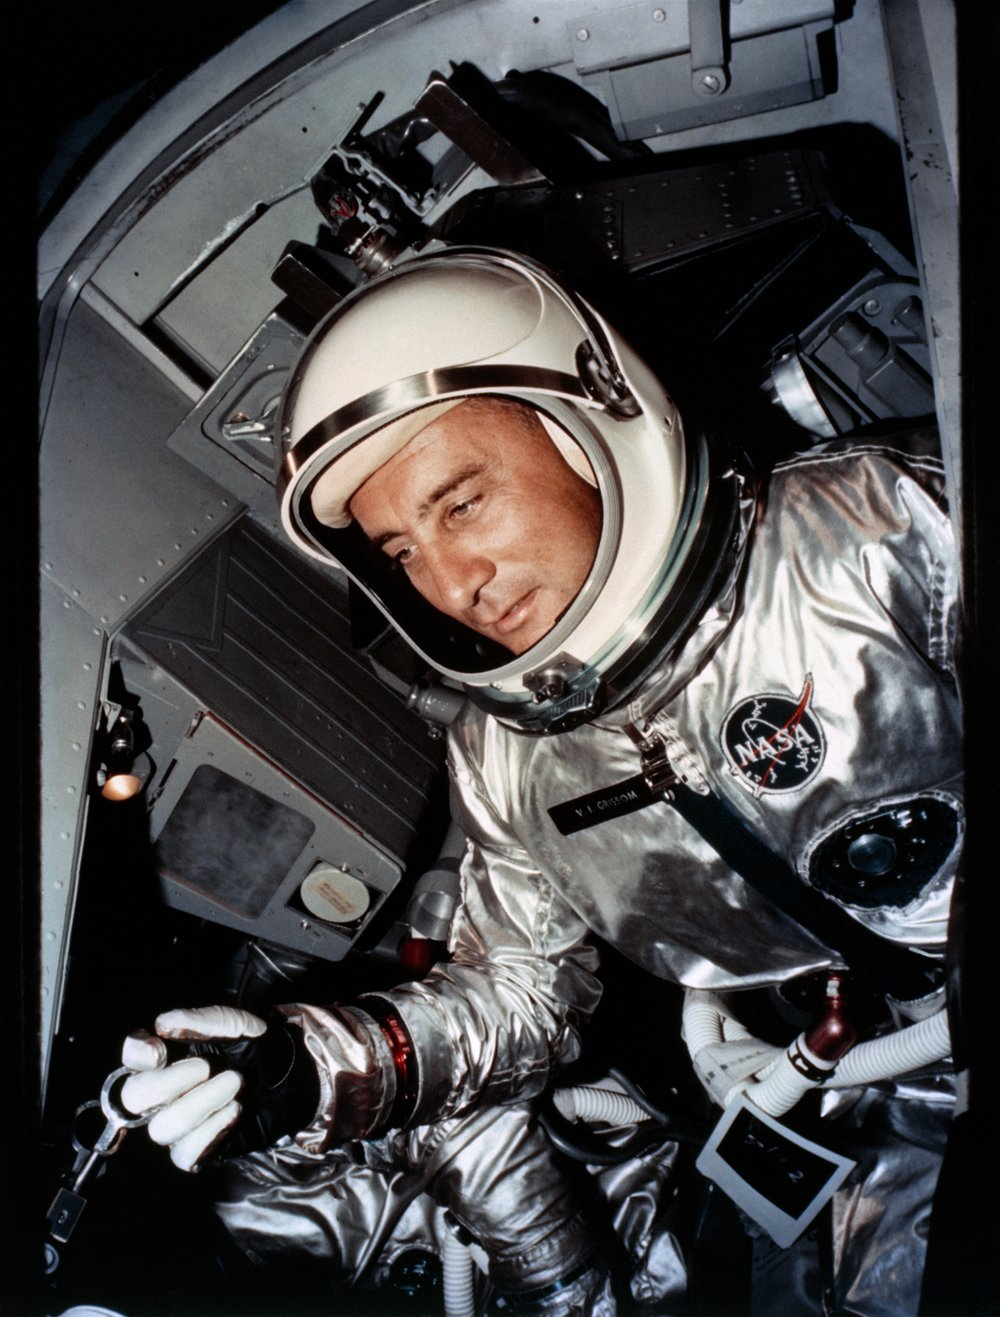 Astronaut Grissom is shown in the Gemini-3 spacecraft